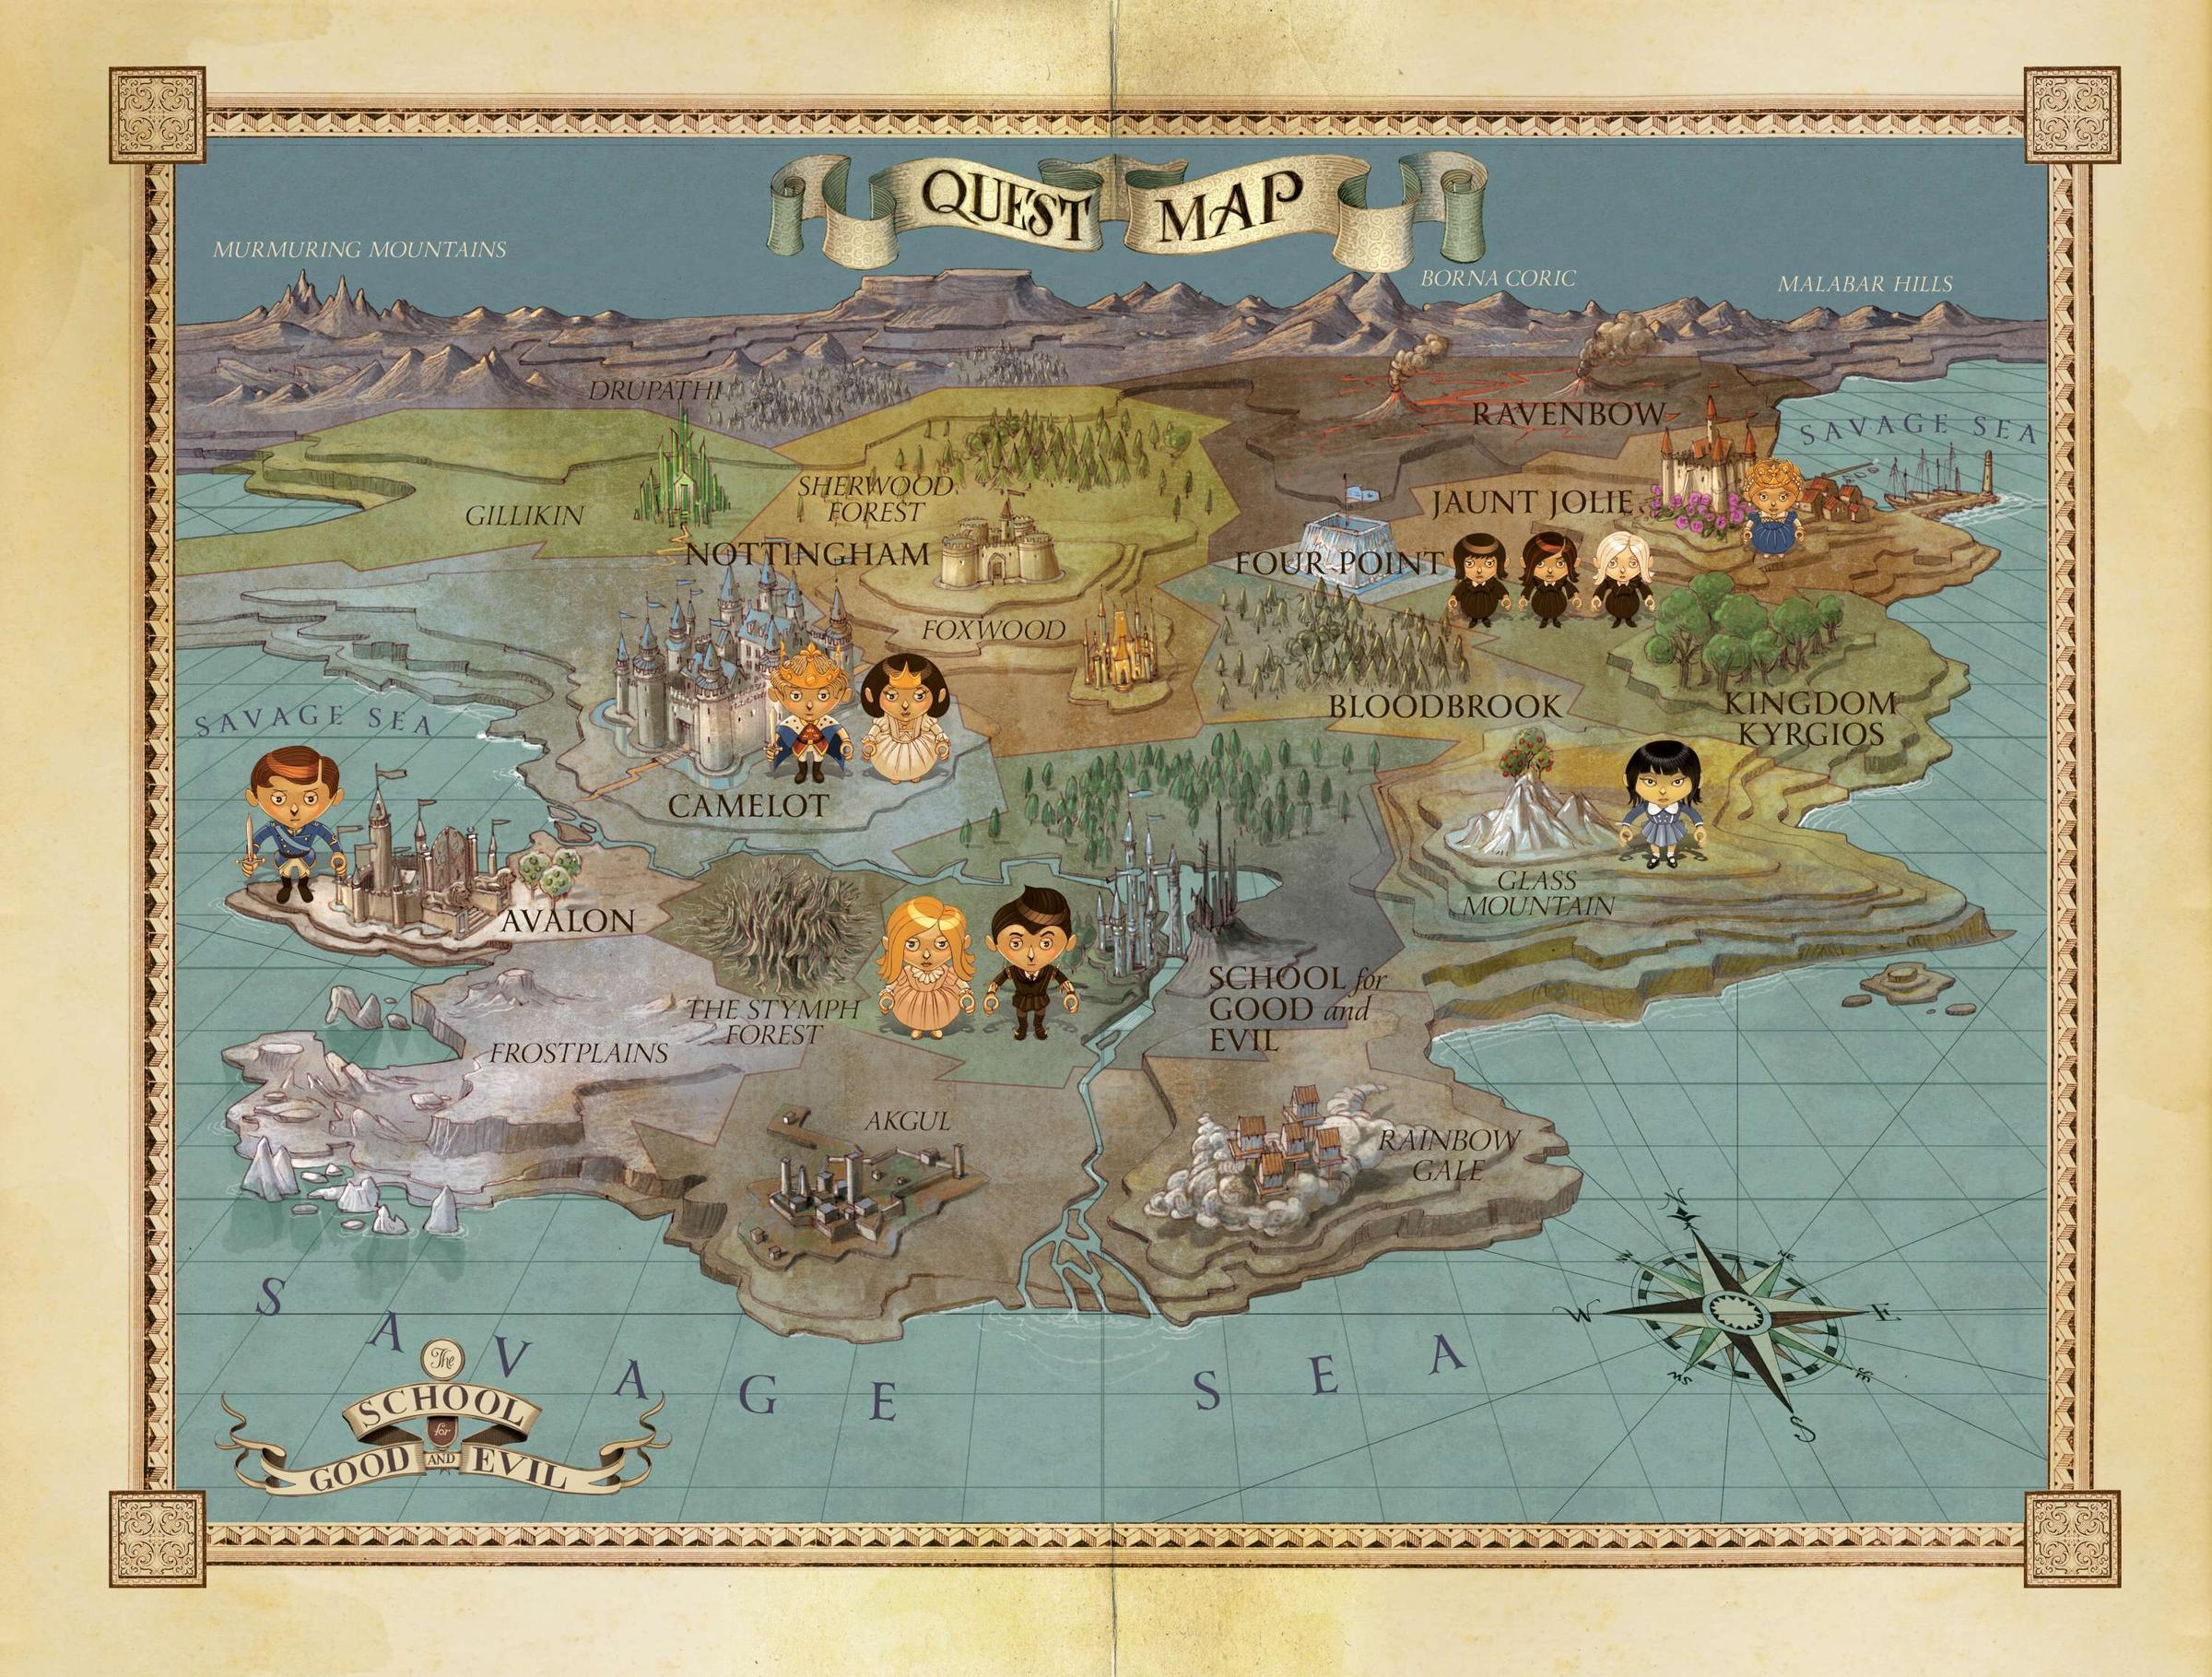 Map Of Georgia For Kids.School For Good And Evil Is A Kids Fantasy Series For The Fake